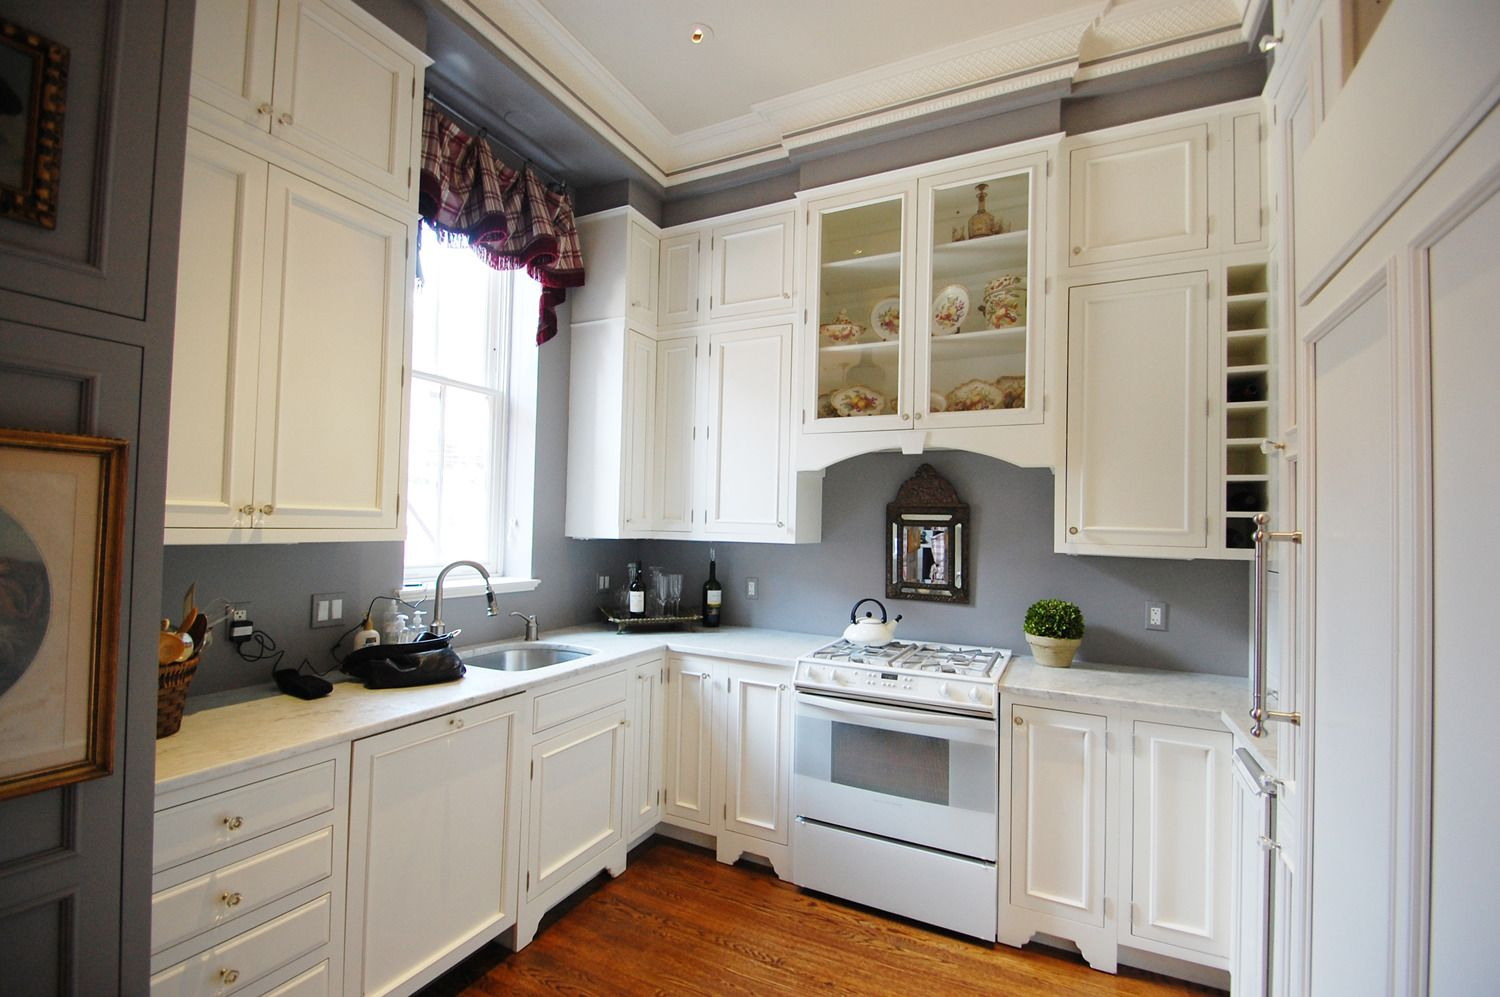 gray kitchen cabinets of kitchens traditional gray kitchen light gray kitchen cabinets 17 Best Images About Moms Kitchen On Pinterest Lumber